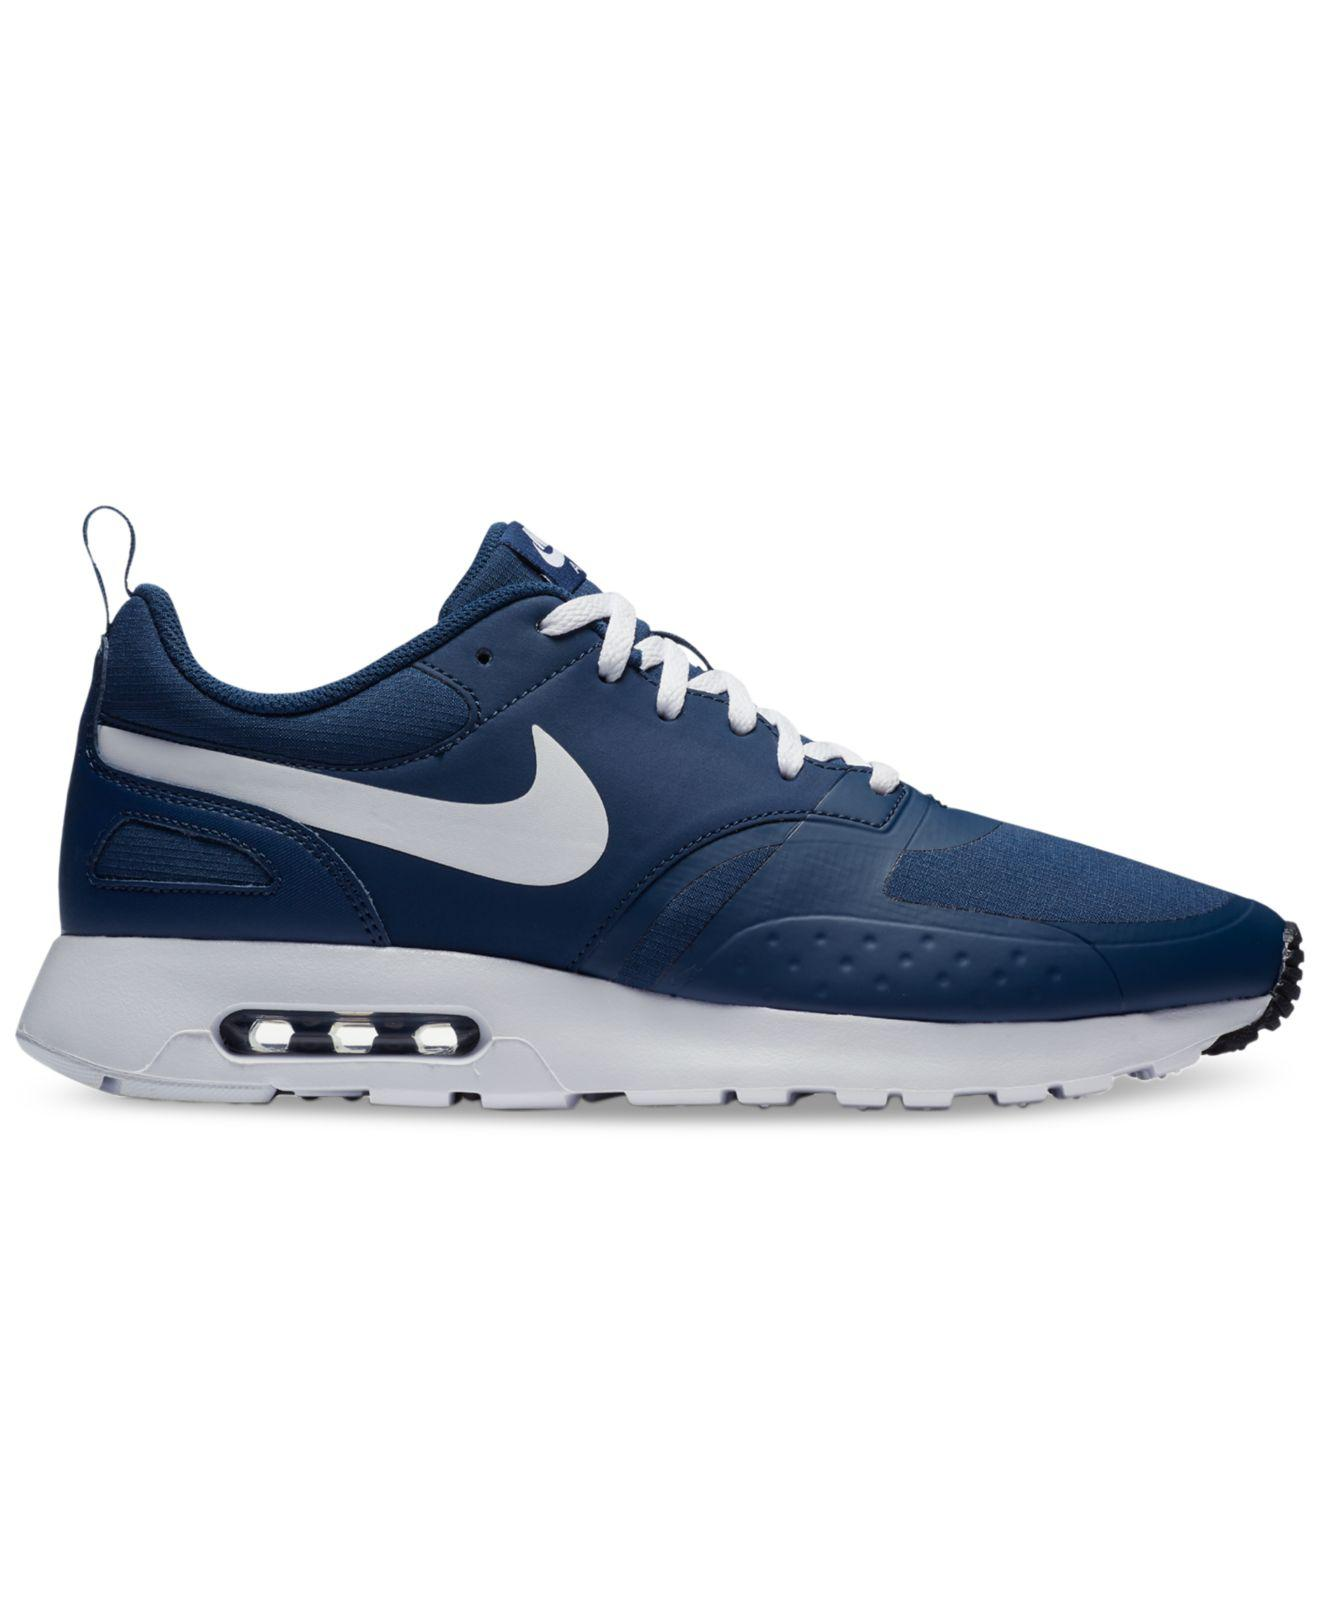 buy online bb839 59f03 ireland barato nike air dt max 96 mujeres azul 35048 57d0e